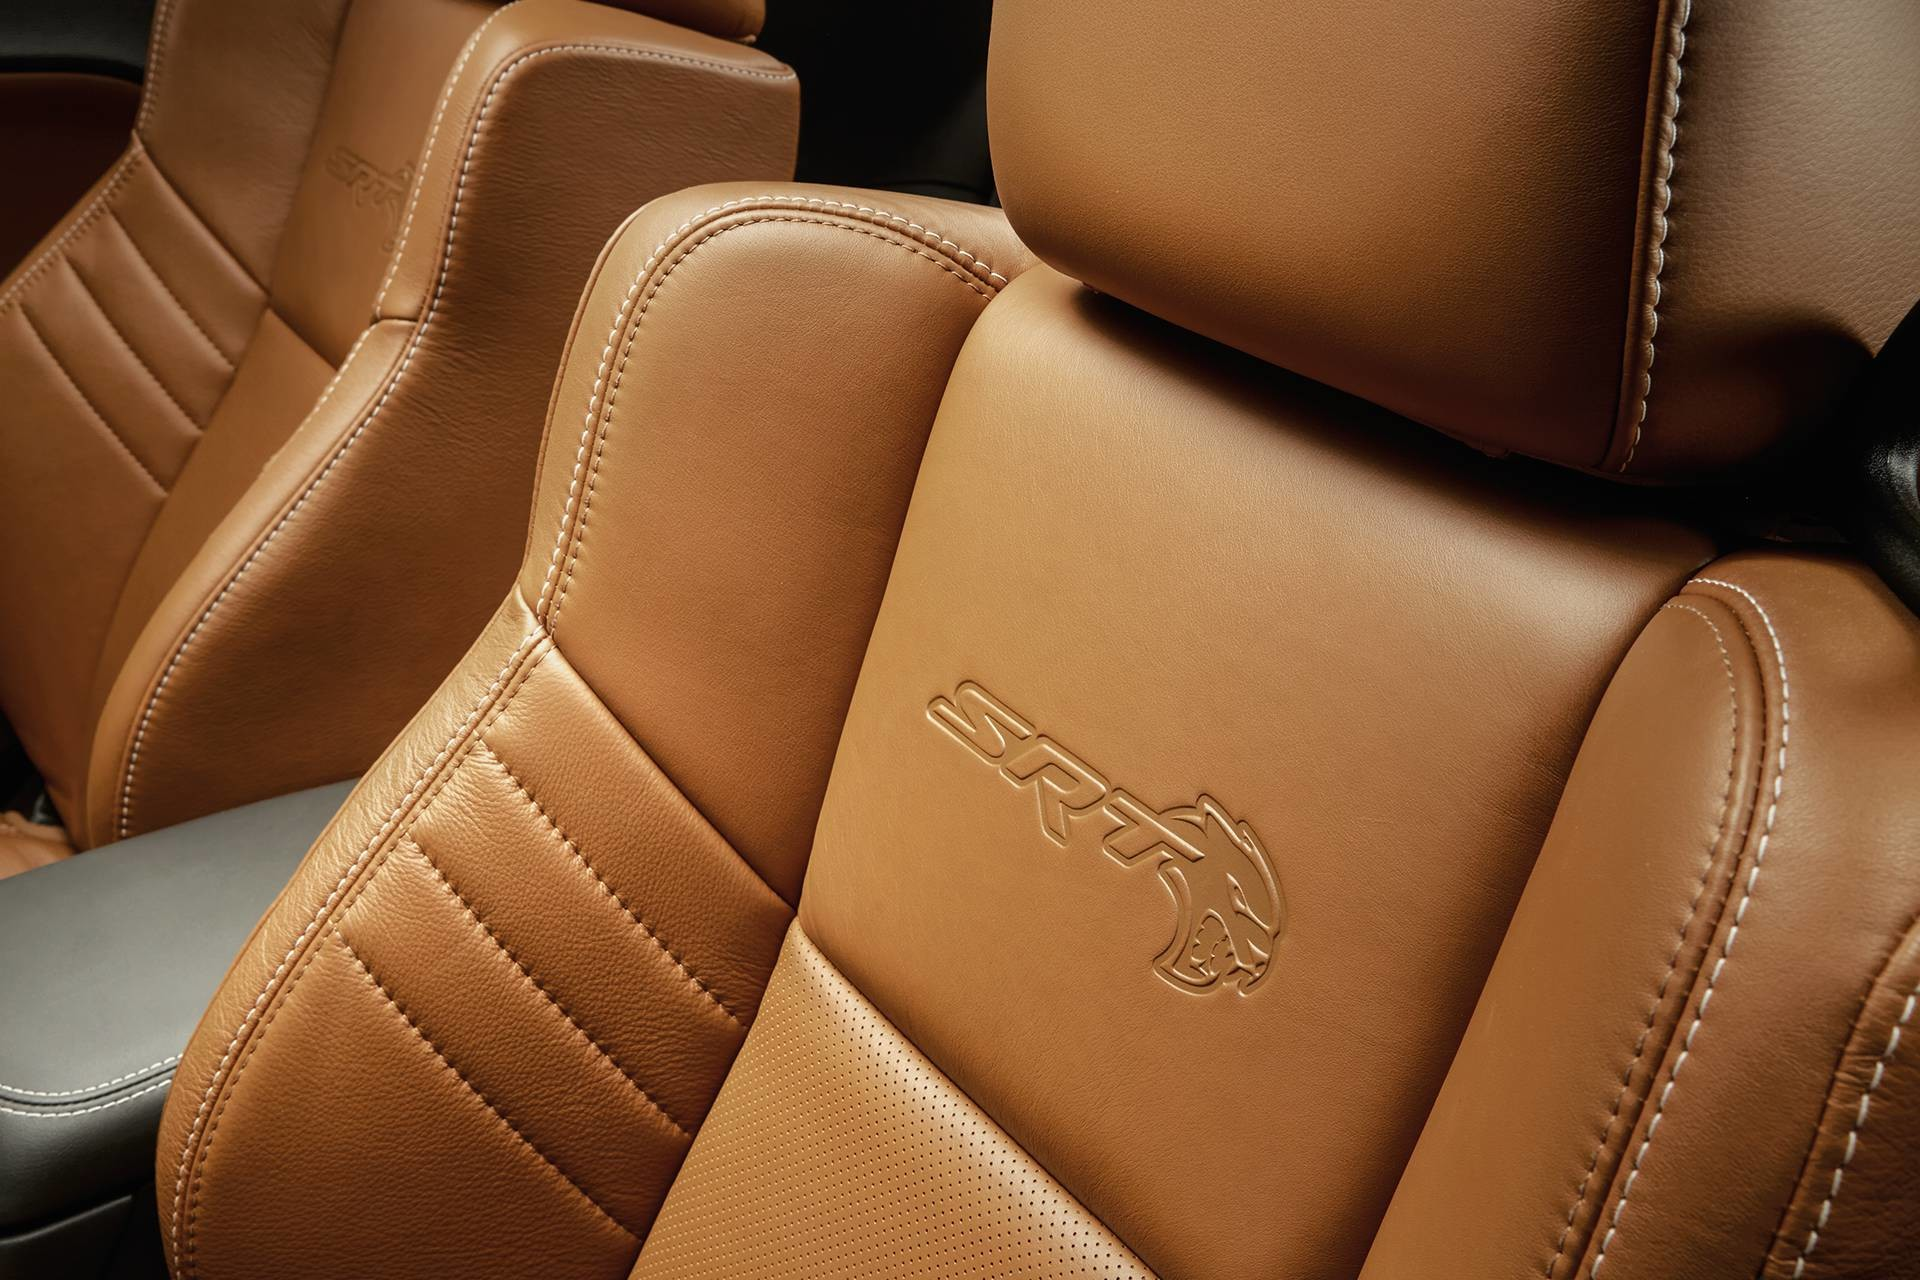 2019 Dodge Charger Hellcat with Laguna leather seats